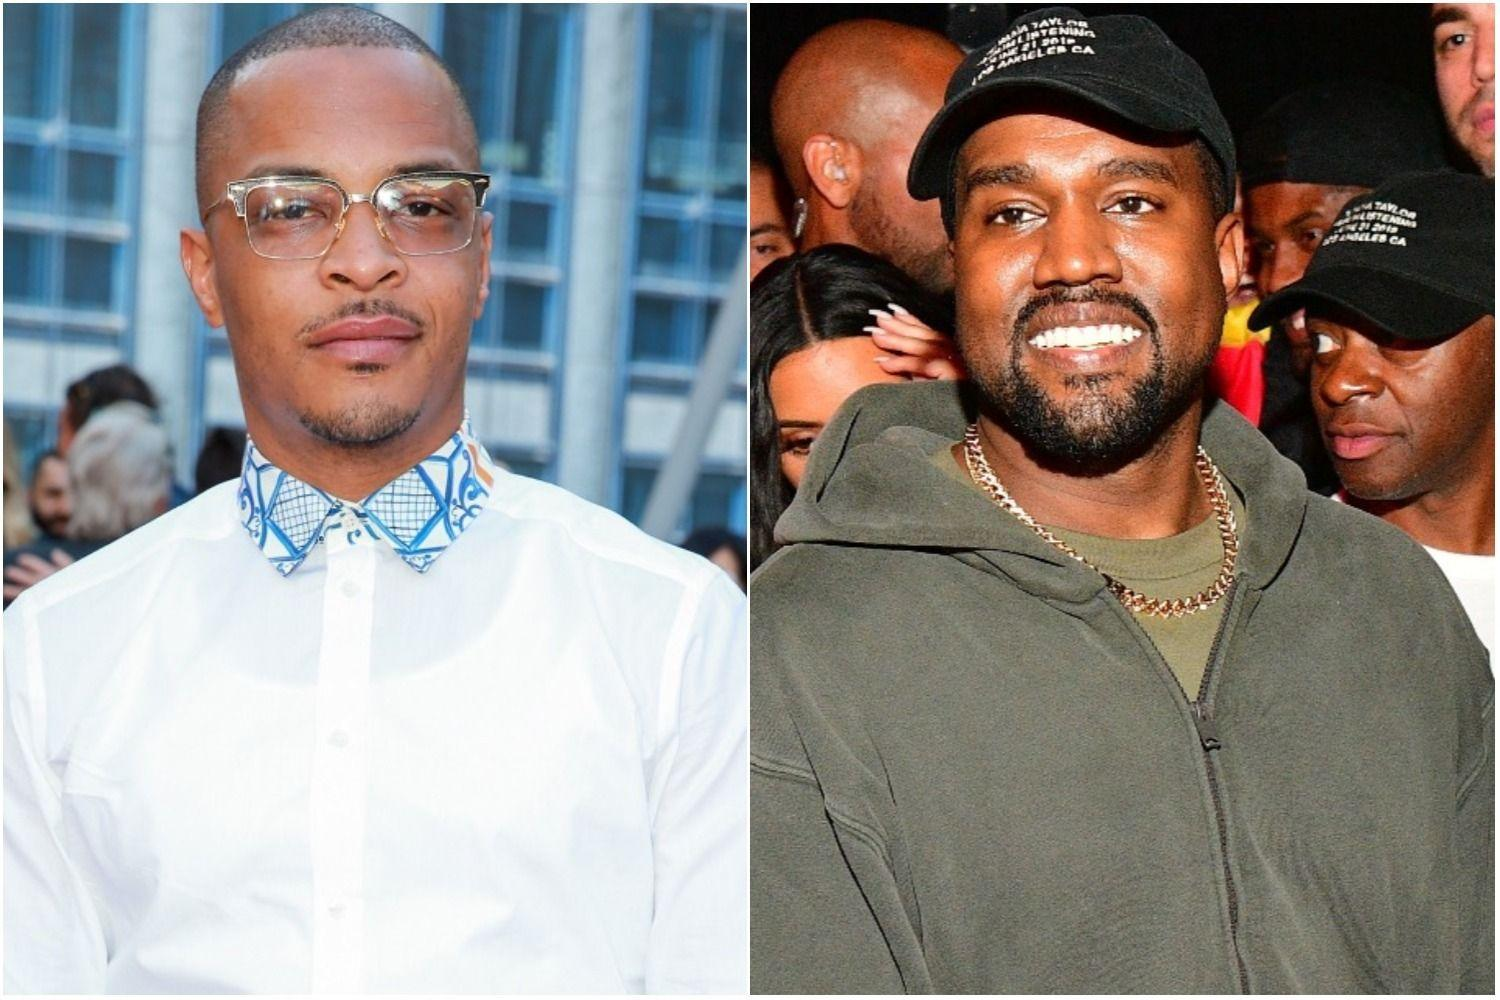 T.I. Has A Few Words For Kanye West Amidst His Massive Breakdown